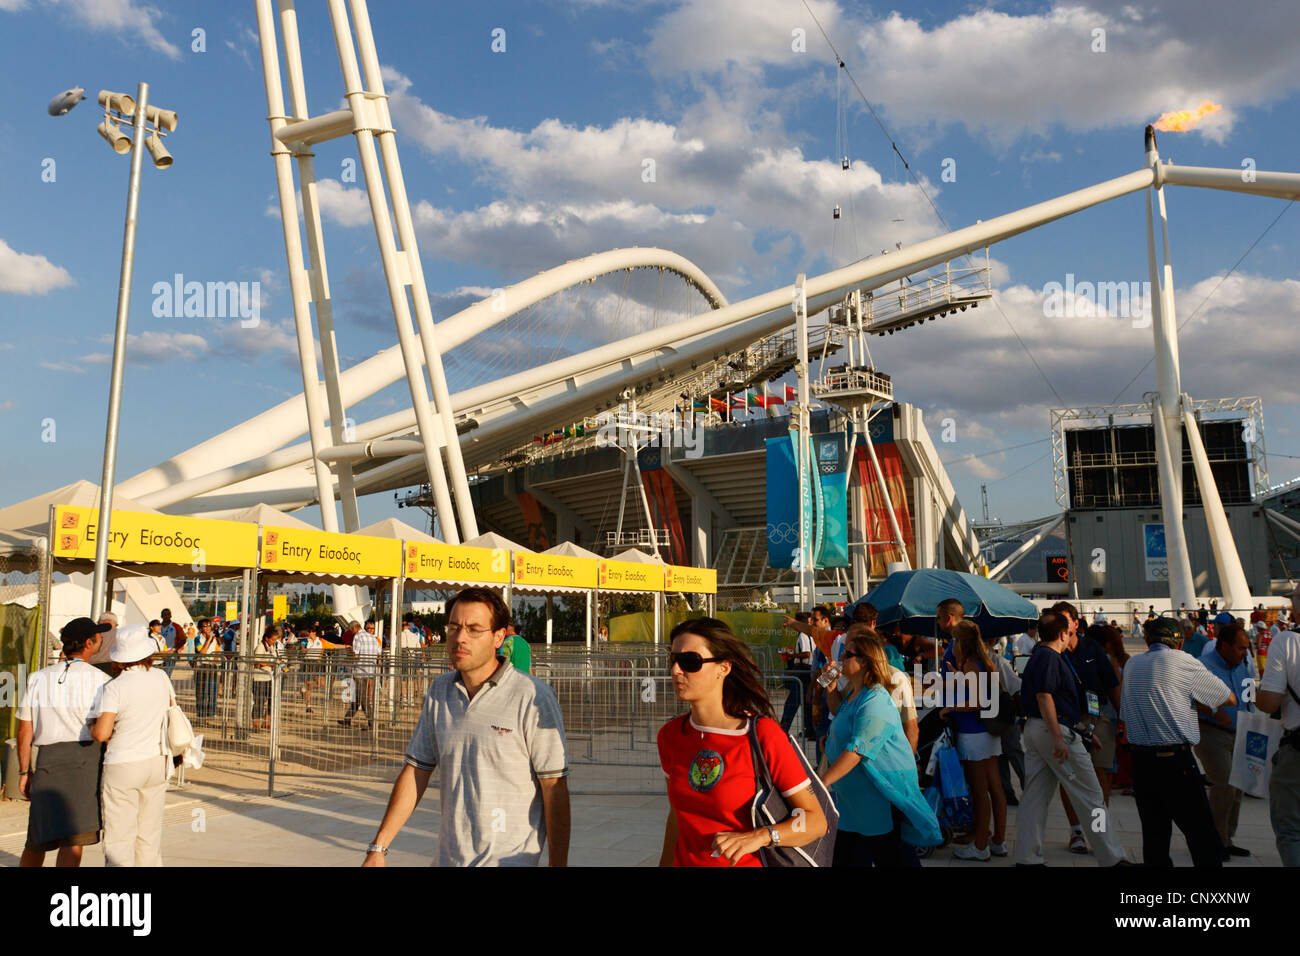 General view of spectators and the exterior of Olympic Stadium in Athens, Greece August 28, 2004. - Stock Image